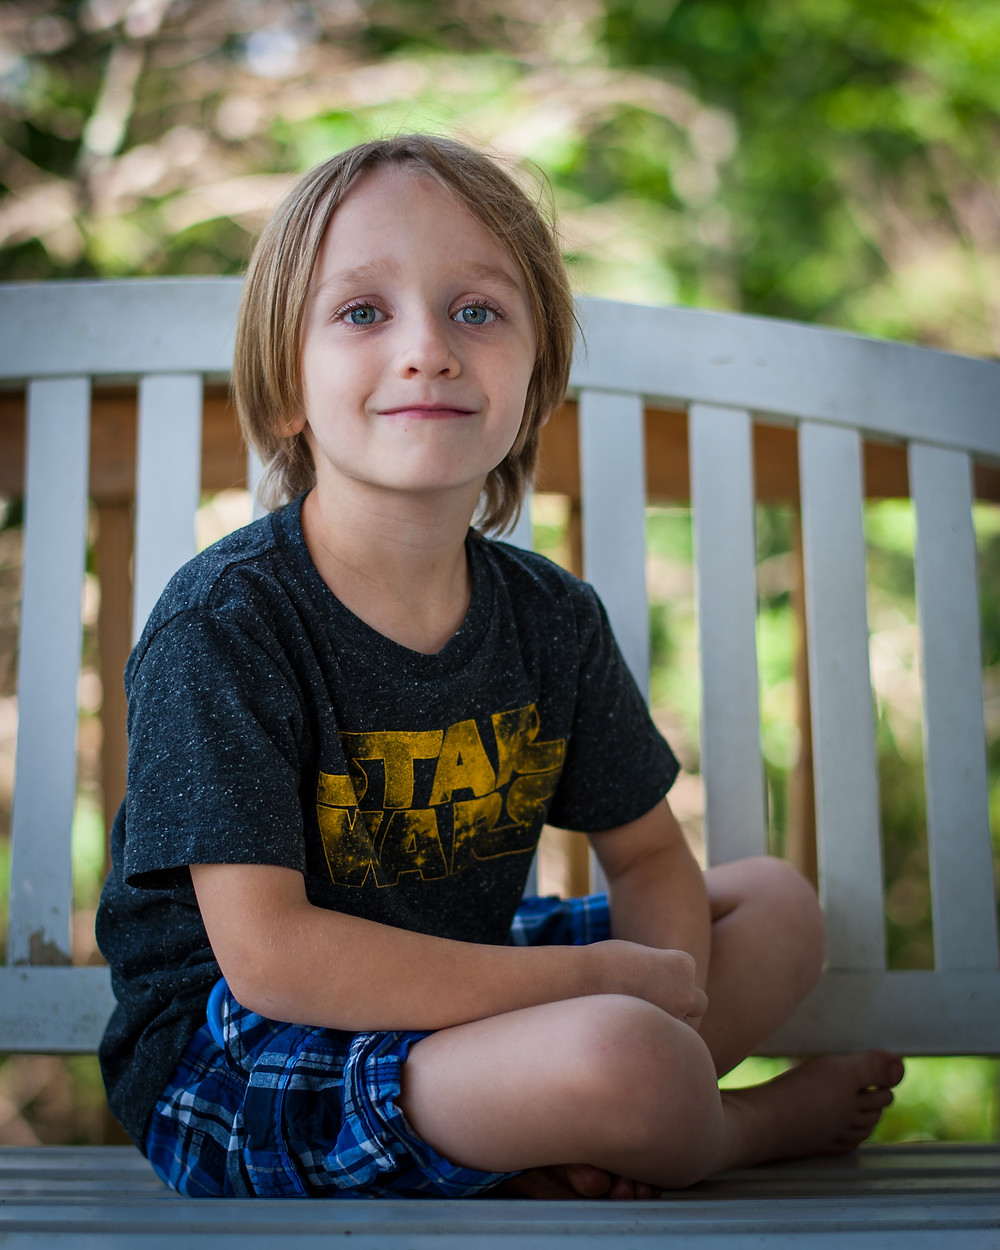 Child on porch - distracting background